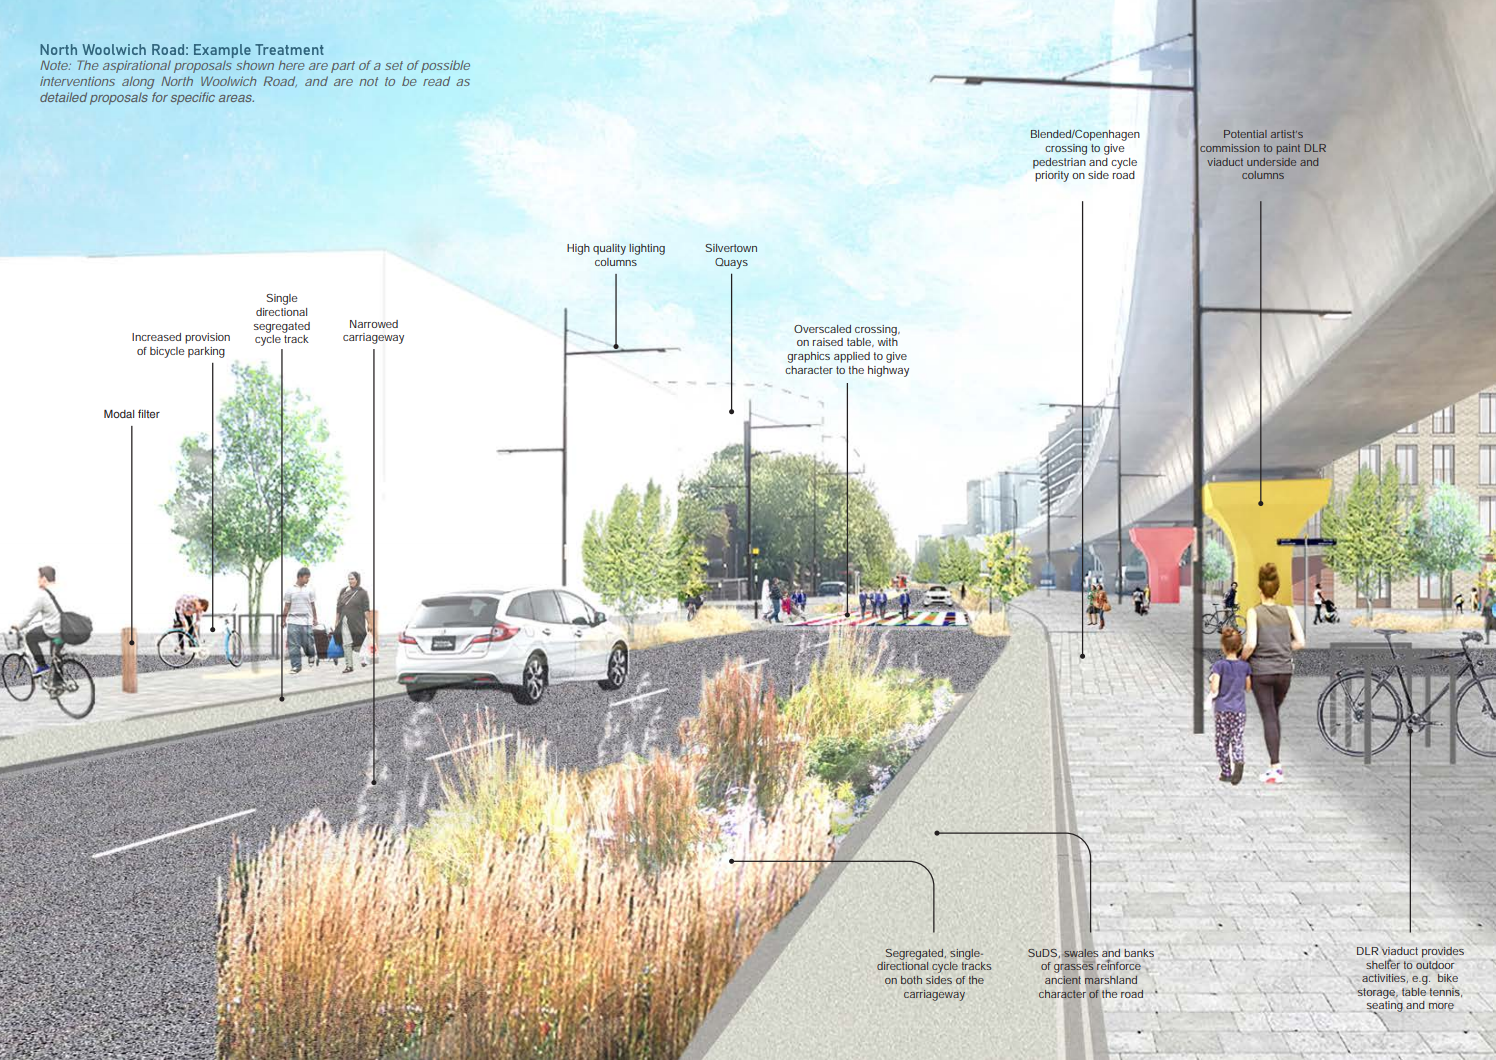 Images from the Royal Docks public realm framework